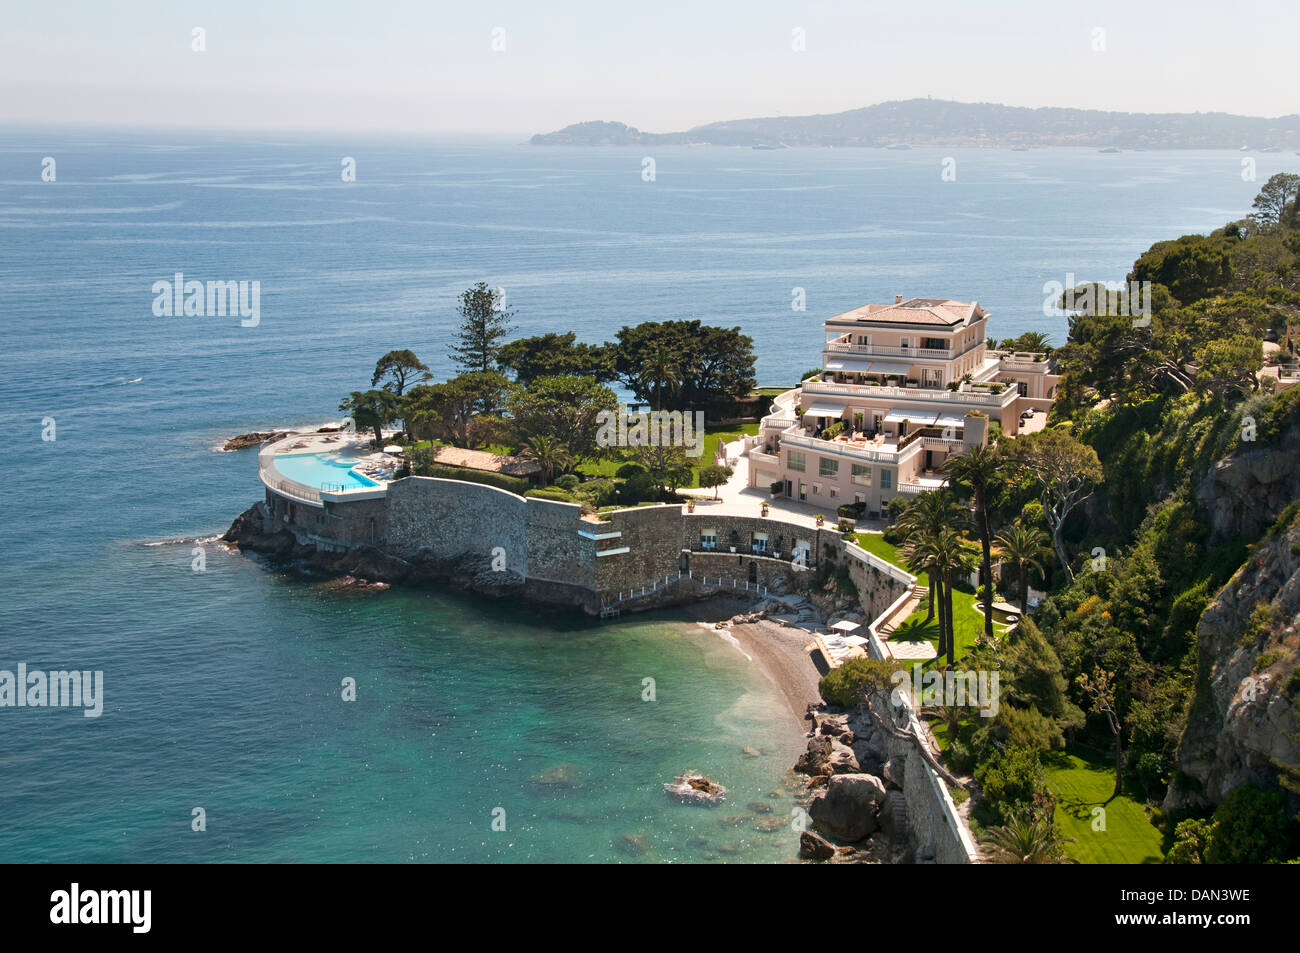 Hotel cap estel in eze bord de mer is a luxury hotel with spa on the stock ph - Hotel vietnam bord de mer ...